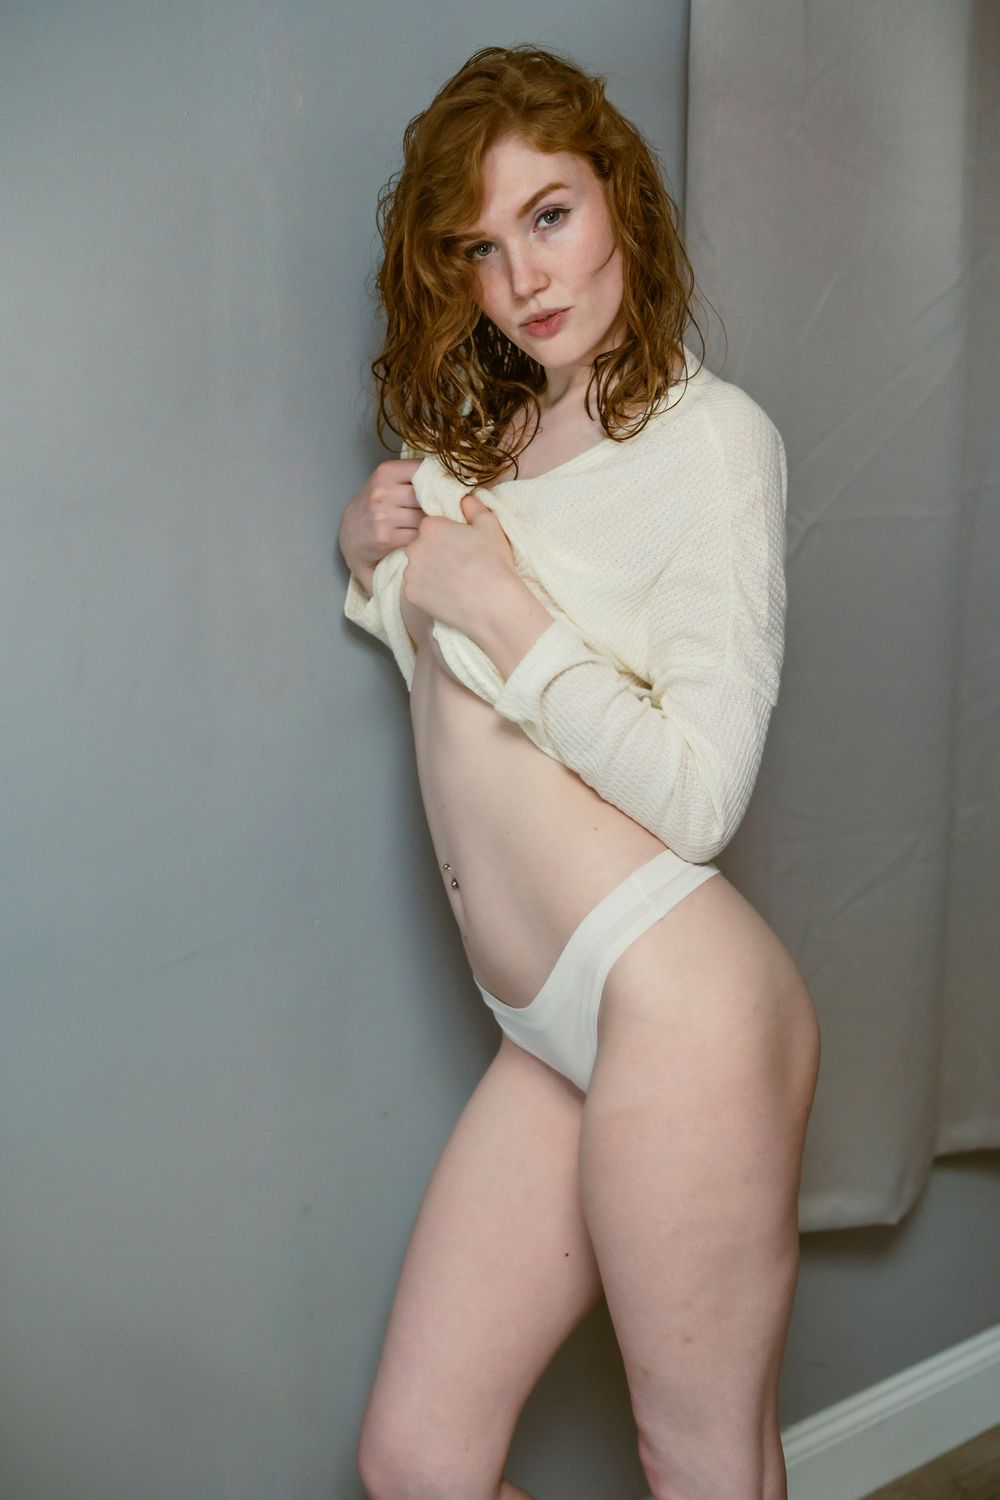 A woman with red hair in a white sweater and white panties lifting the sweater up to her chest and exposing her stomach